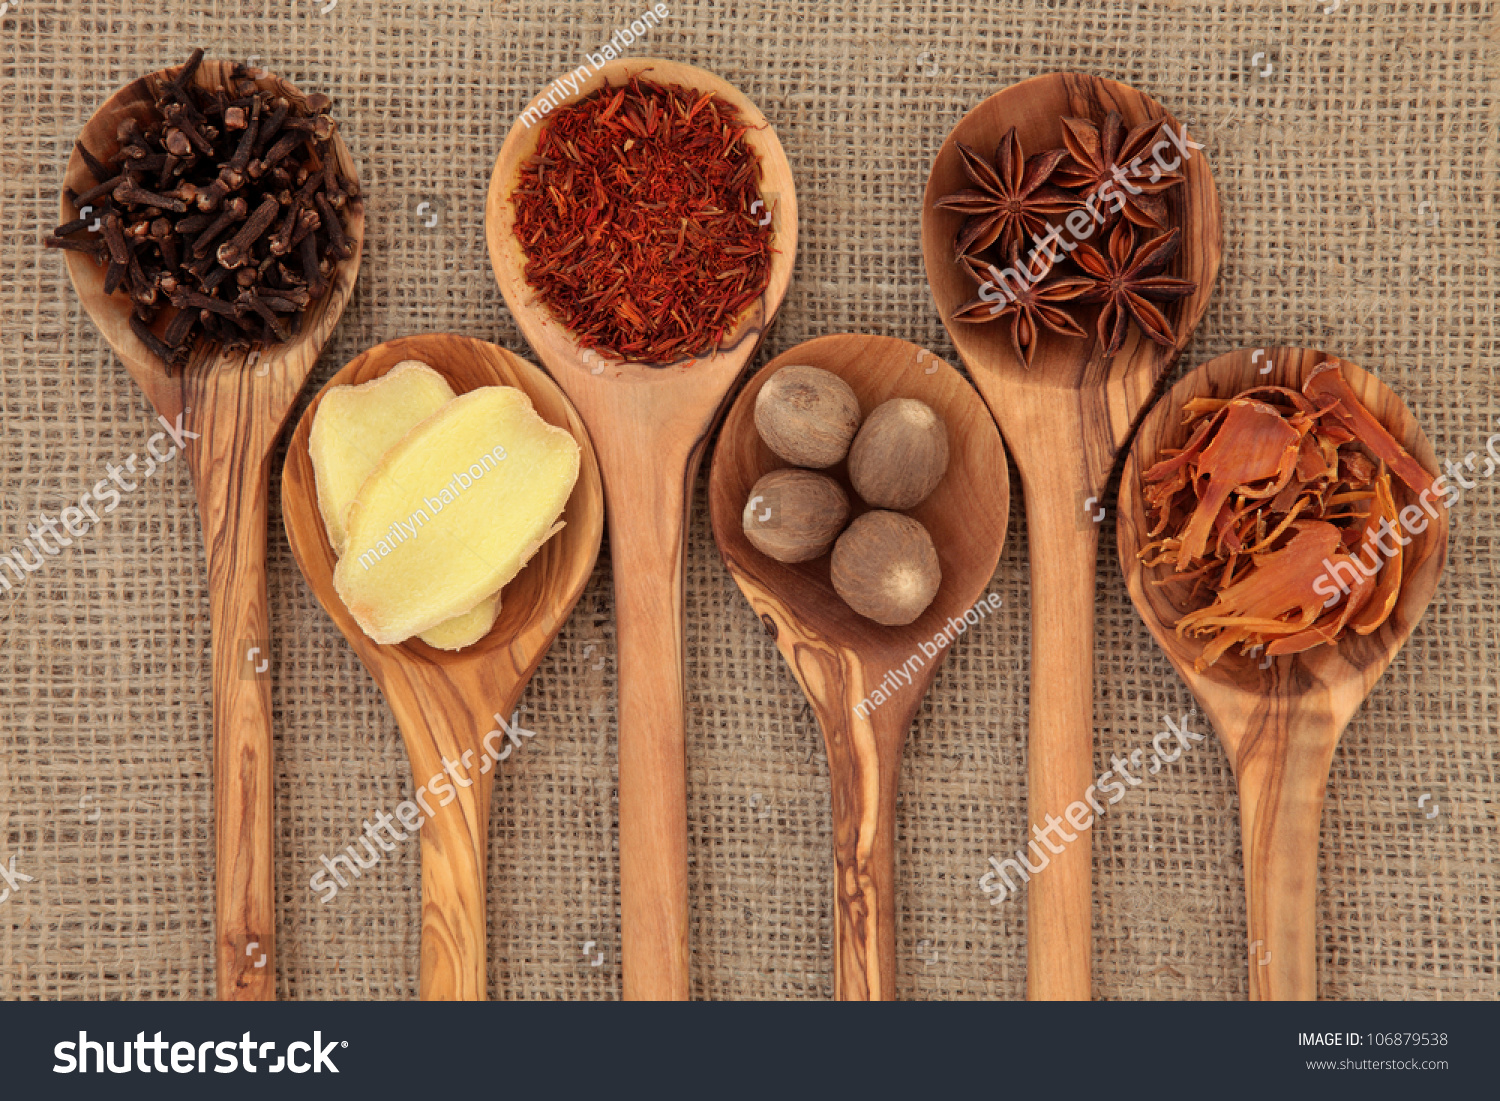 Image Gallery mace spice